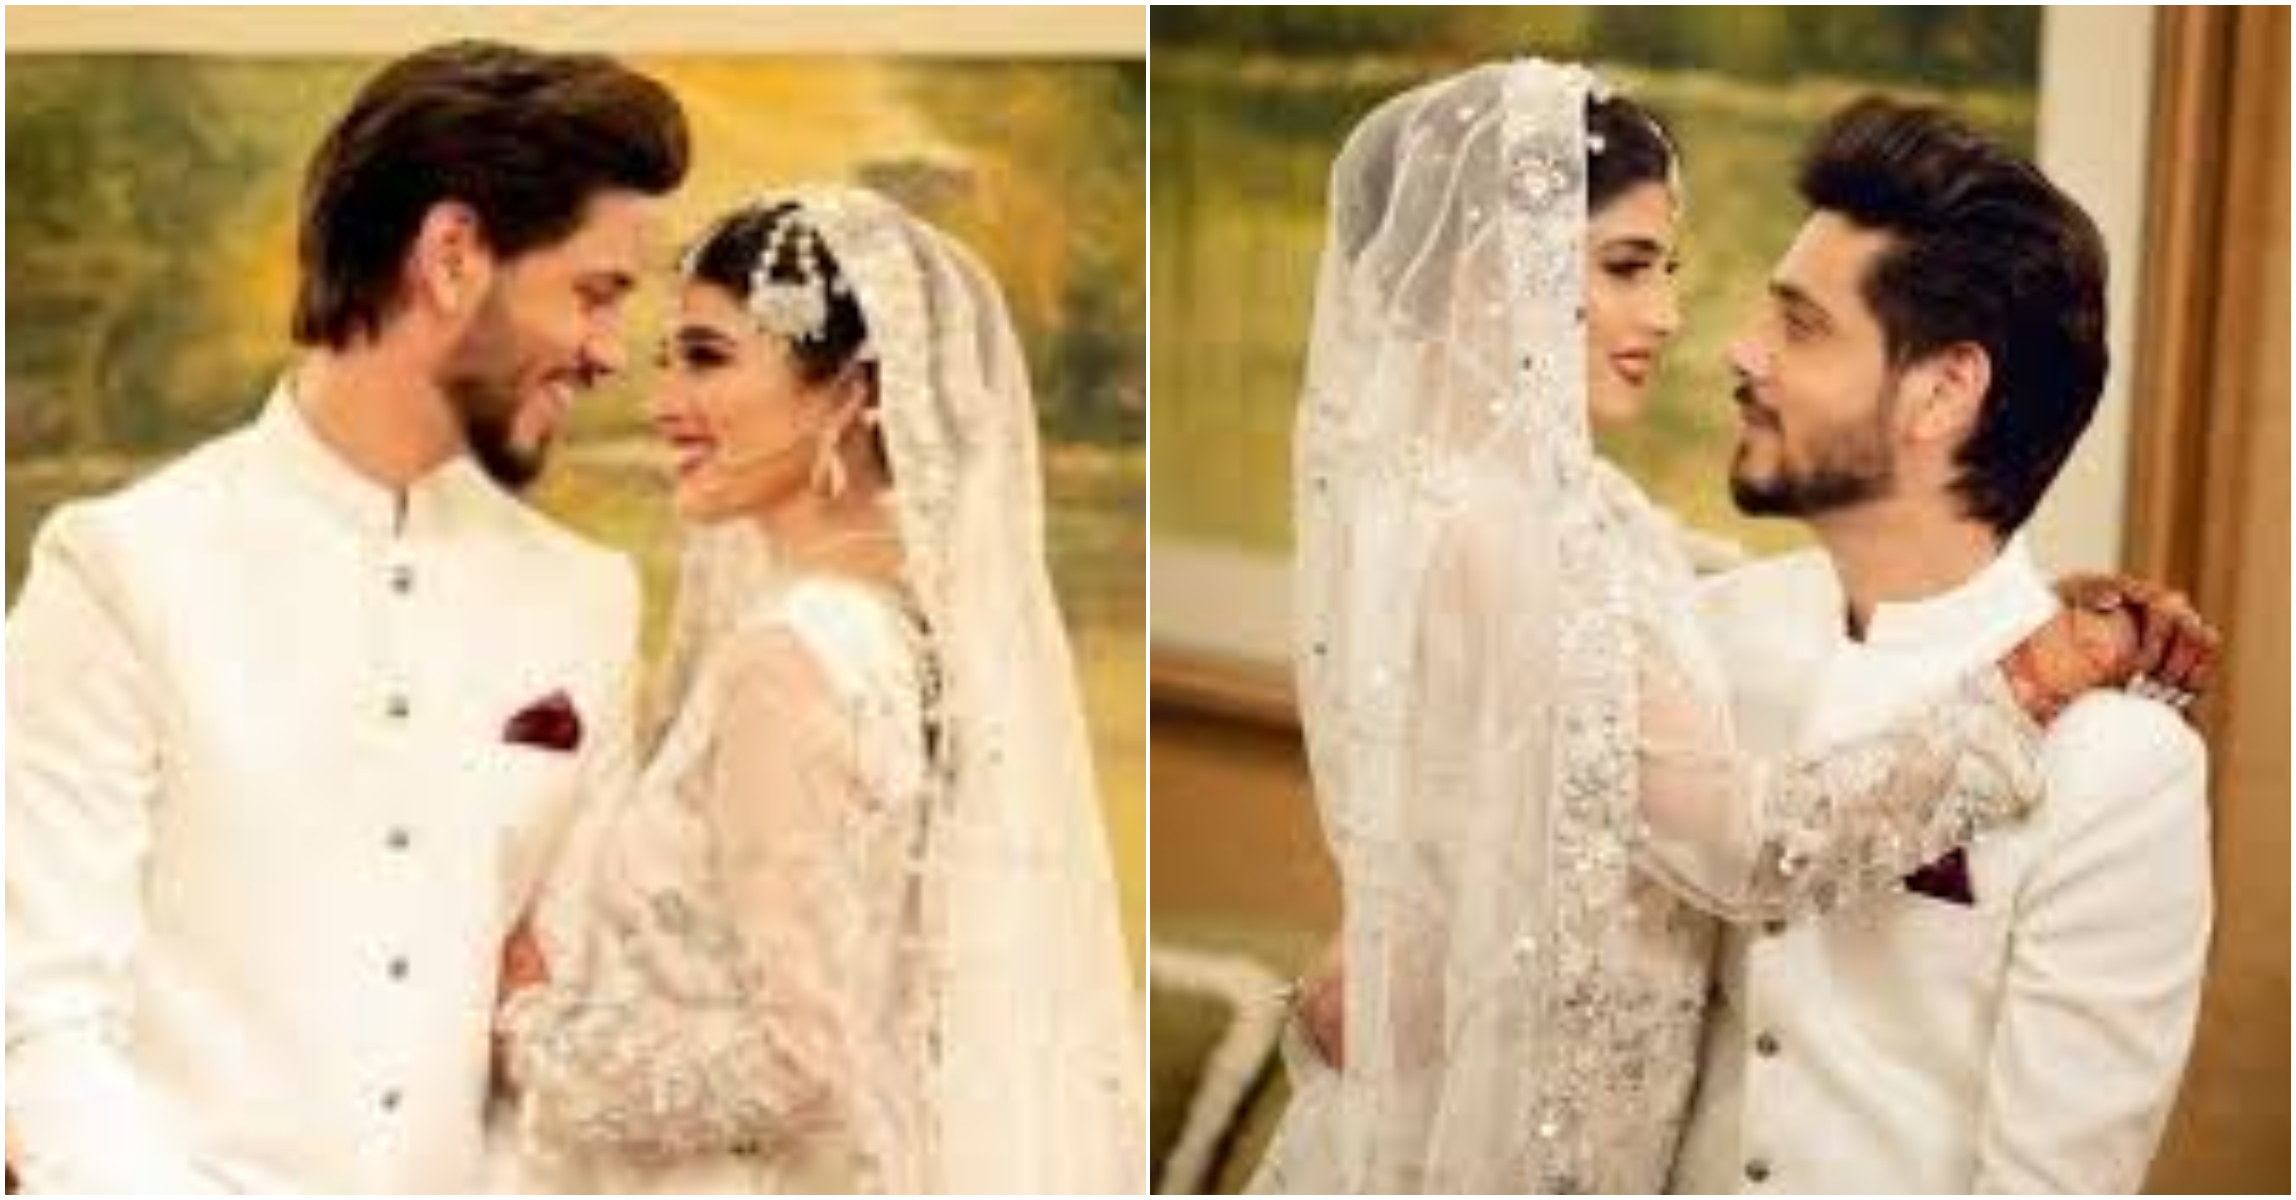 TV Ahmed Godil ties knot with Asra Ahmed, photos go viral